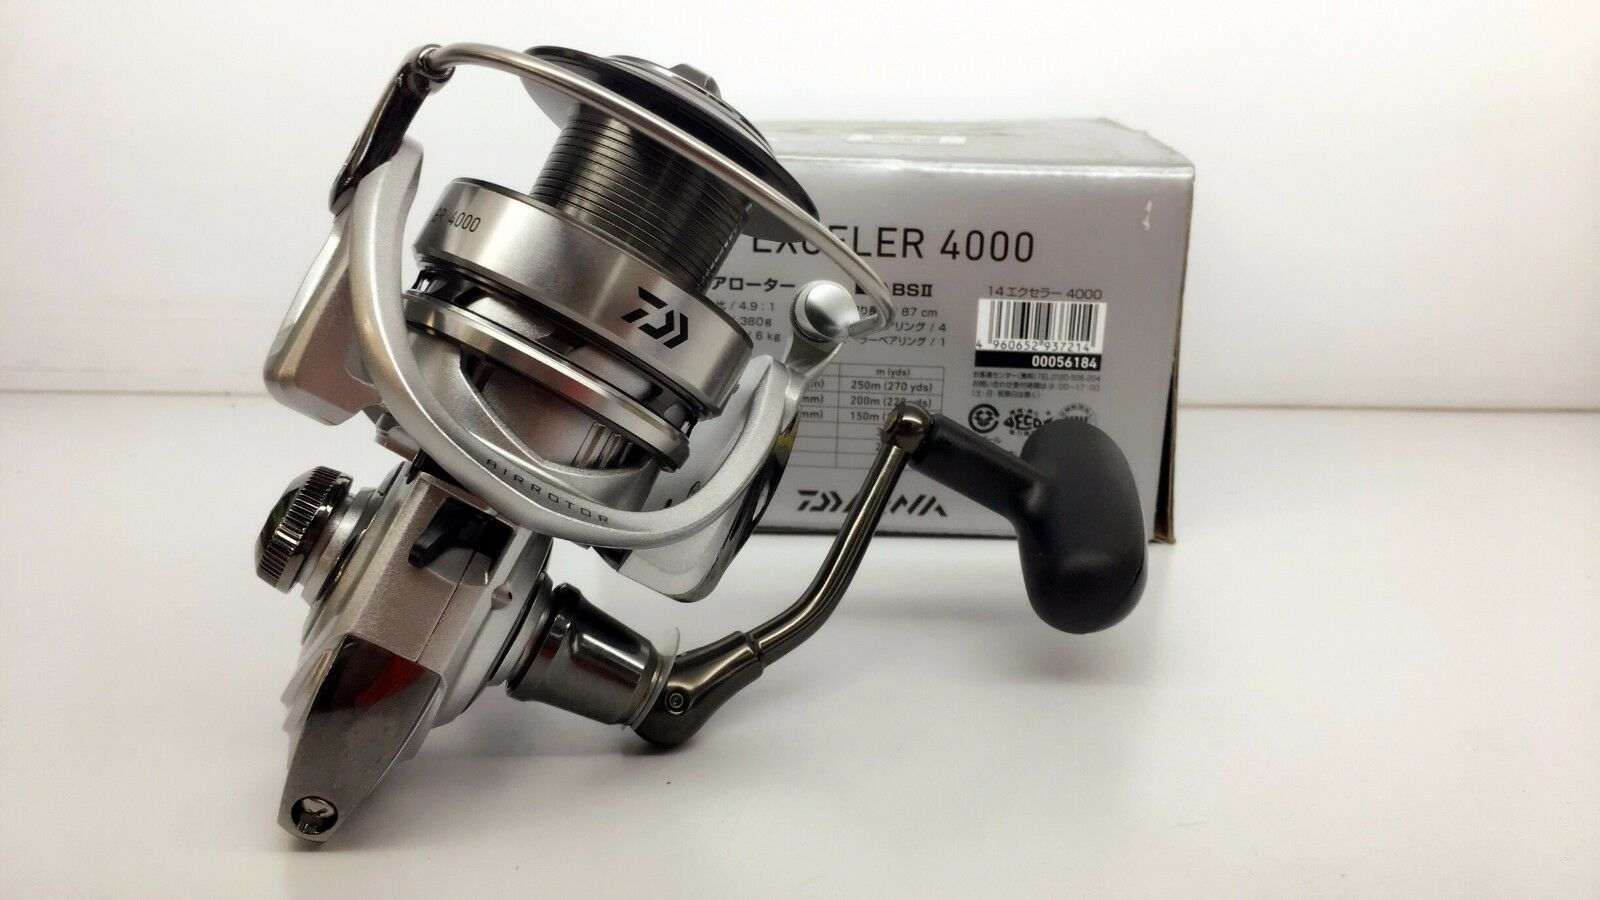 DAIWA Exceler 4000 Spinning Reel 4000 Fedex Priority shipping 2days to Usa